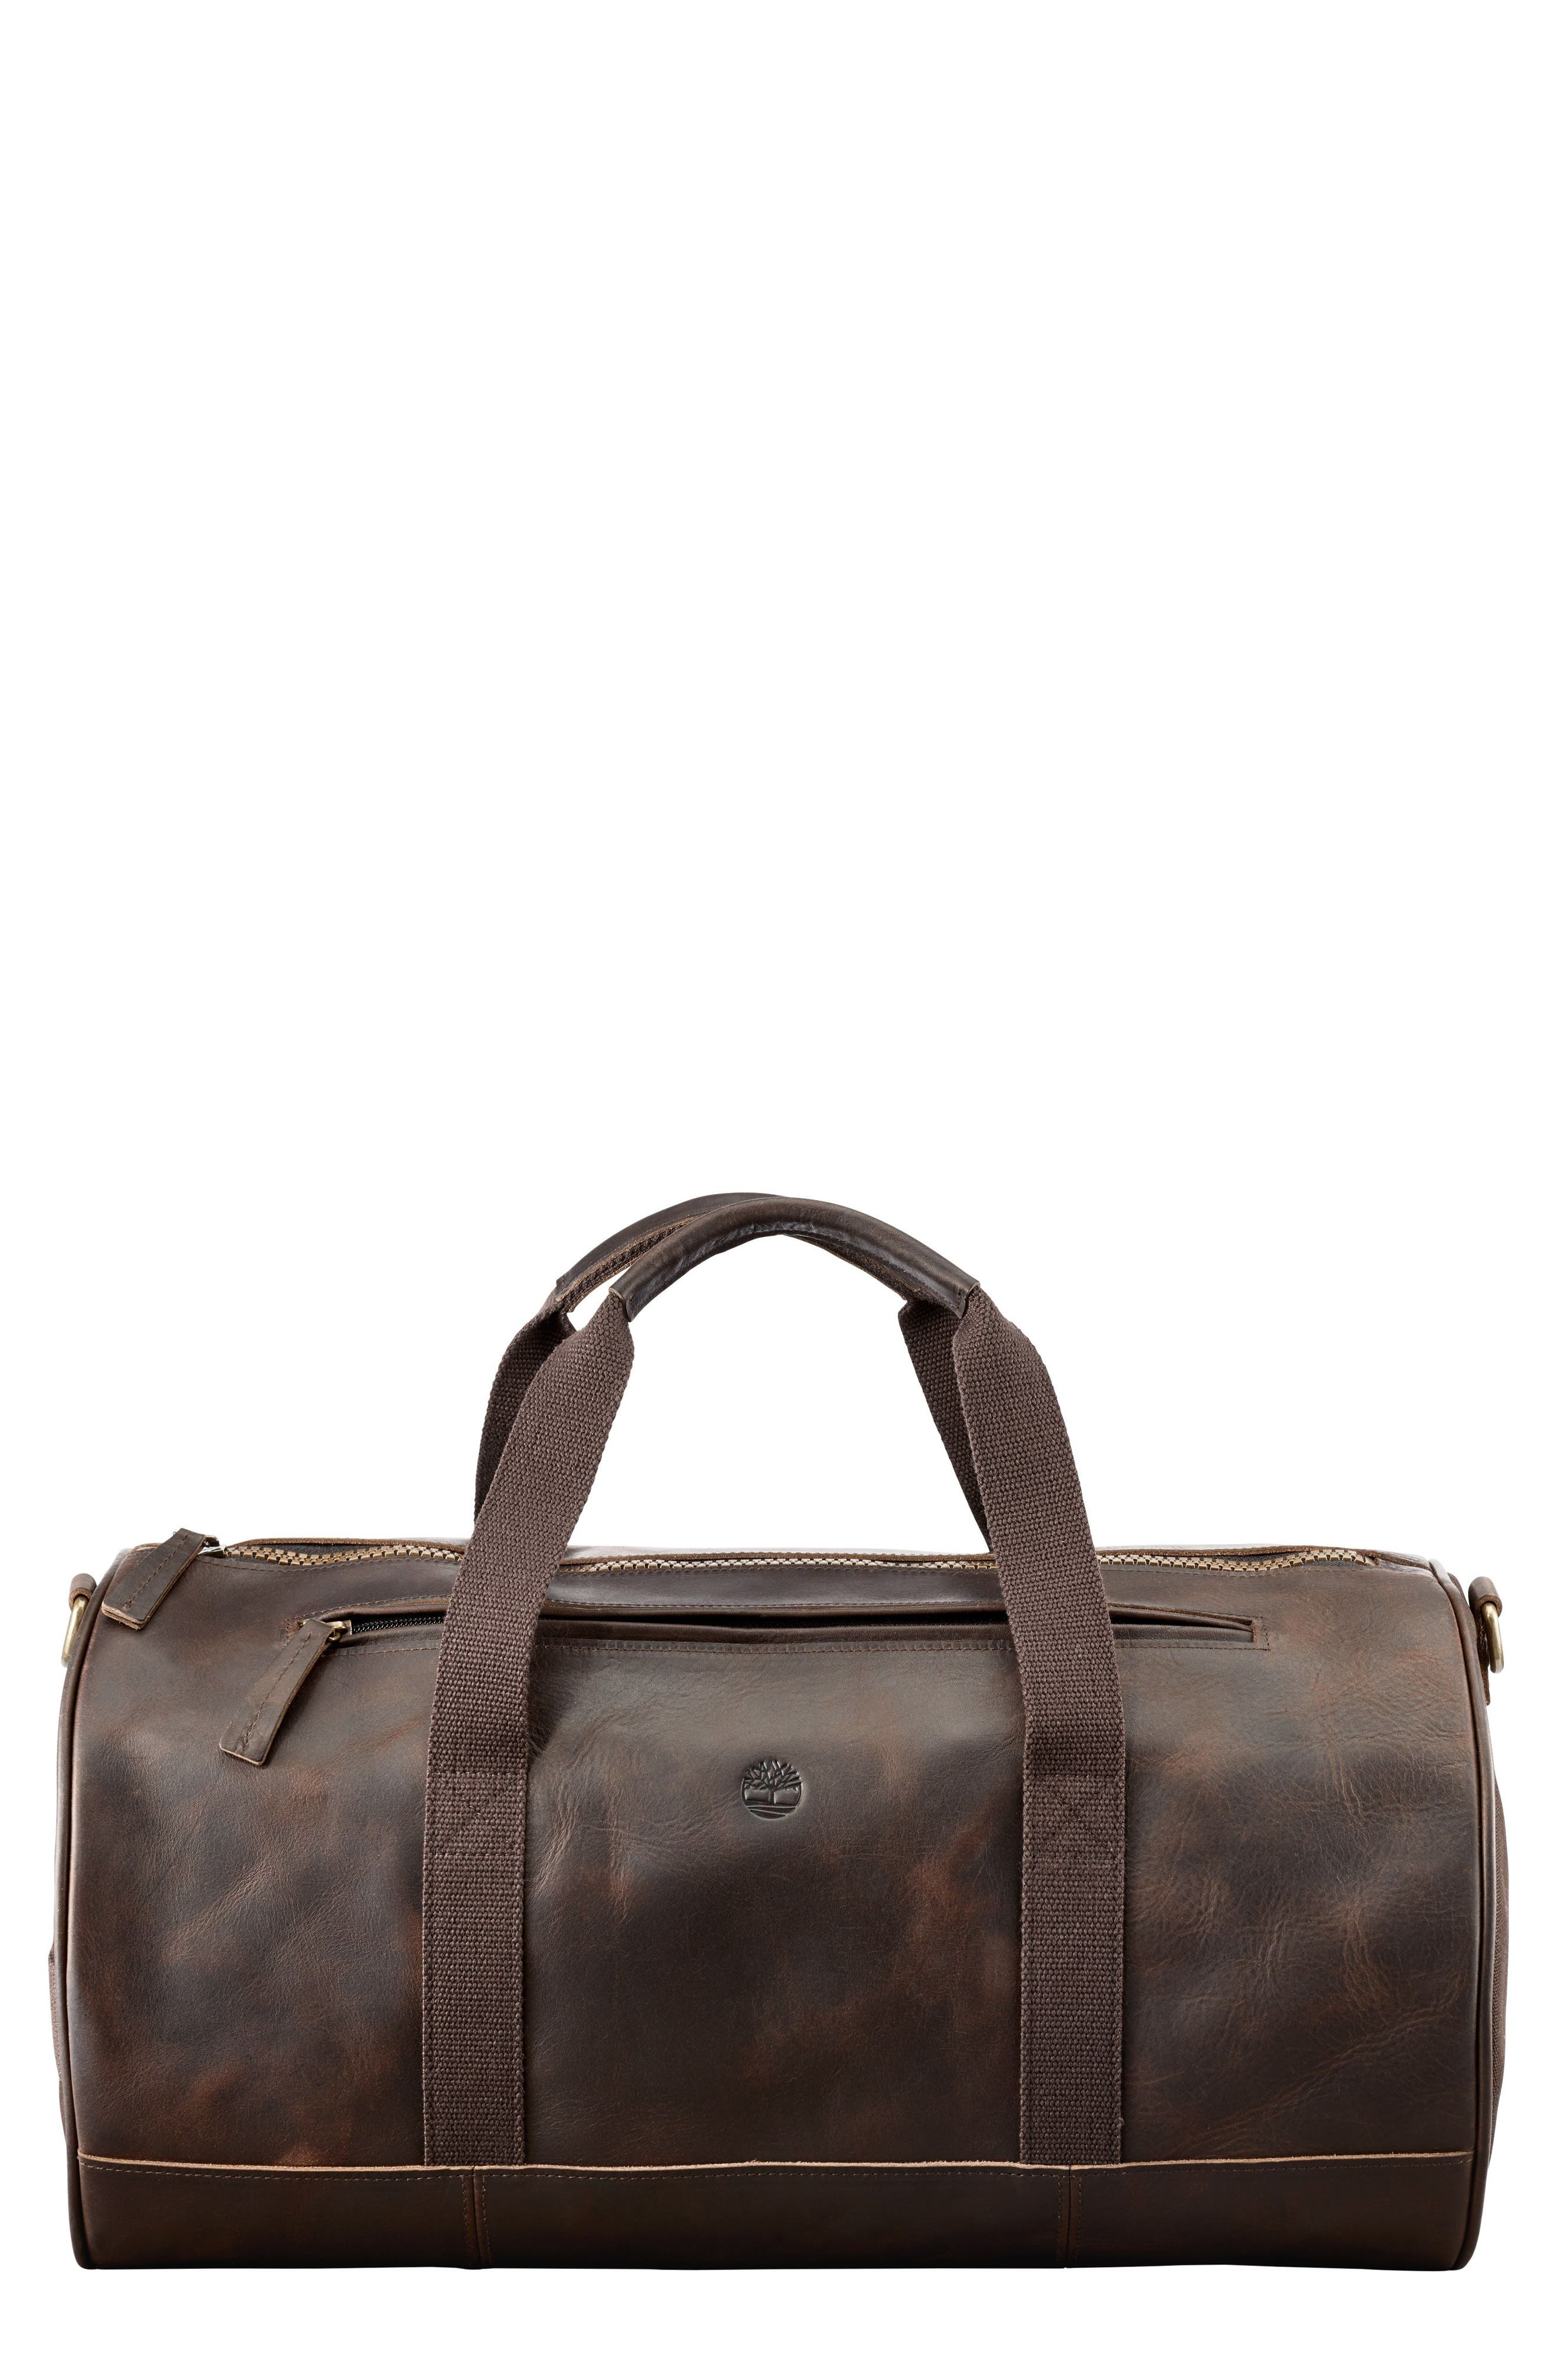 Tuckerman Leather Duffel,                         Main,                         color, DARK BROWN